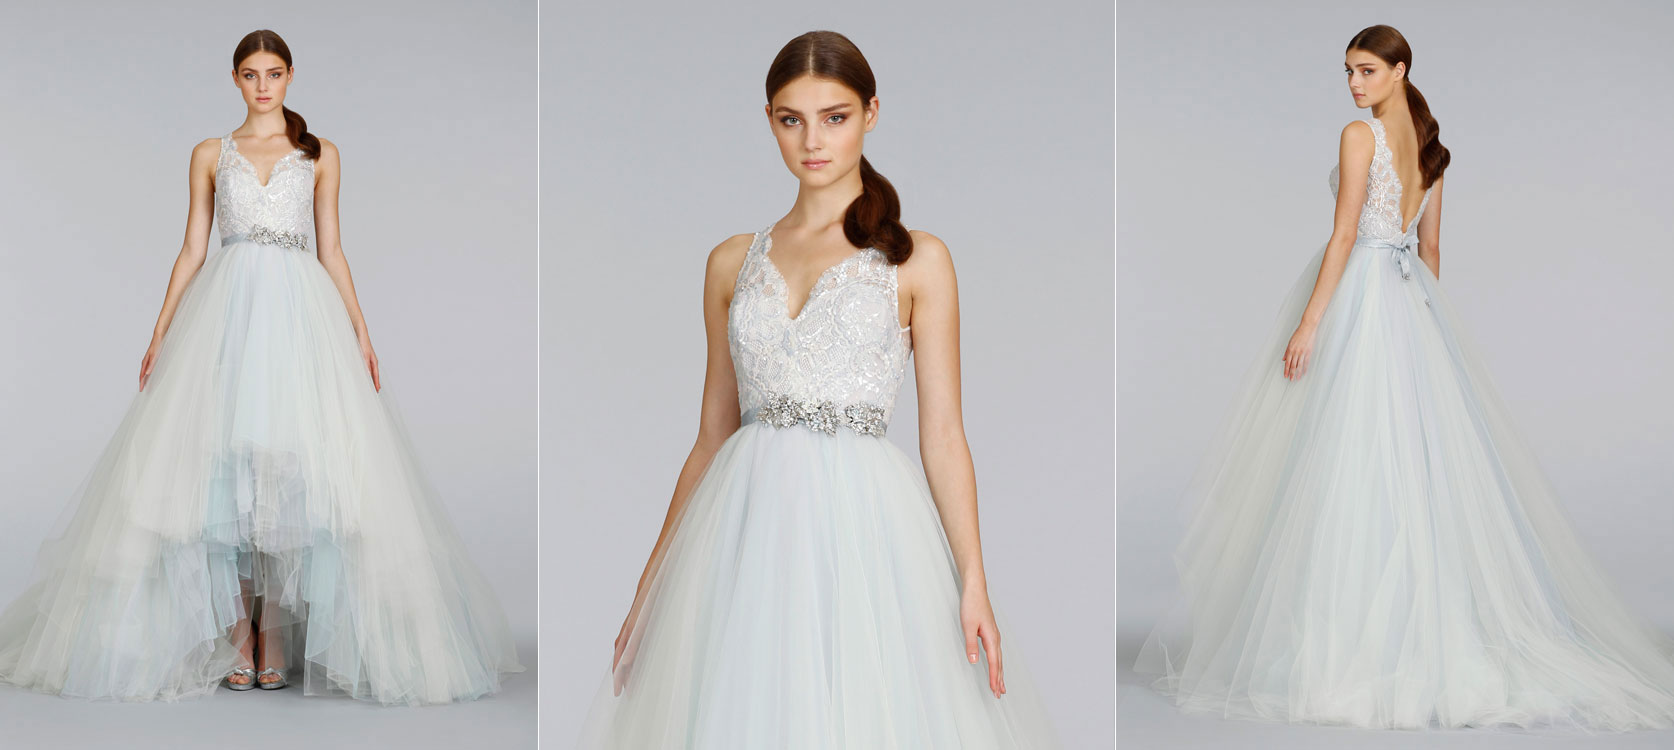 Lazaro-bridal-tulle-ball-gown-beaded-lace-v-neck-crystal